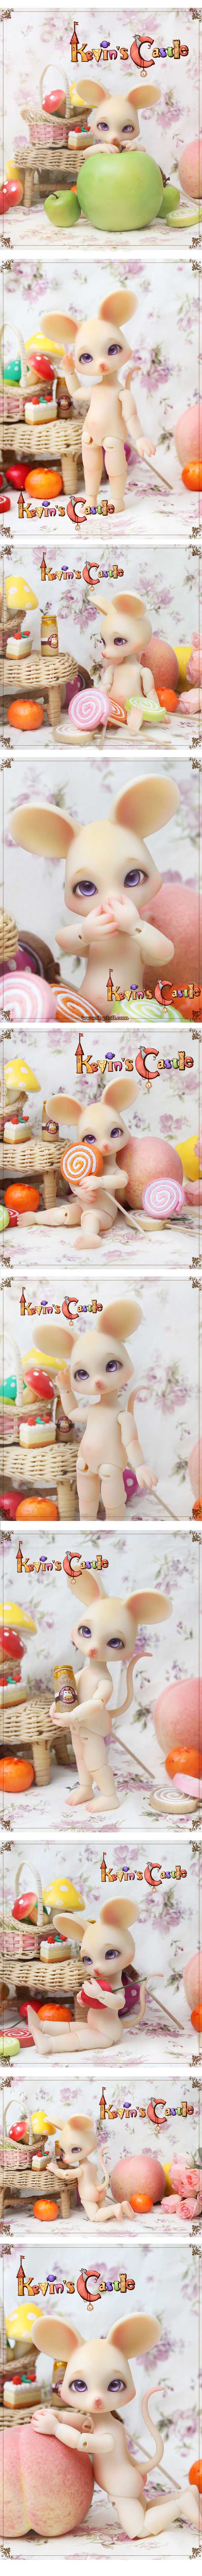 BJD Kevin-1 Ball-jointed doll